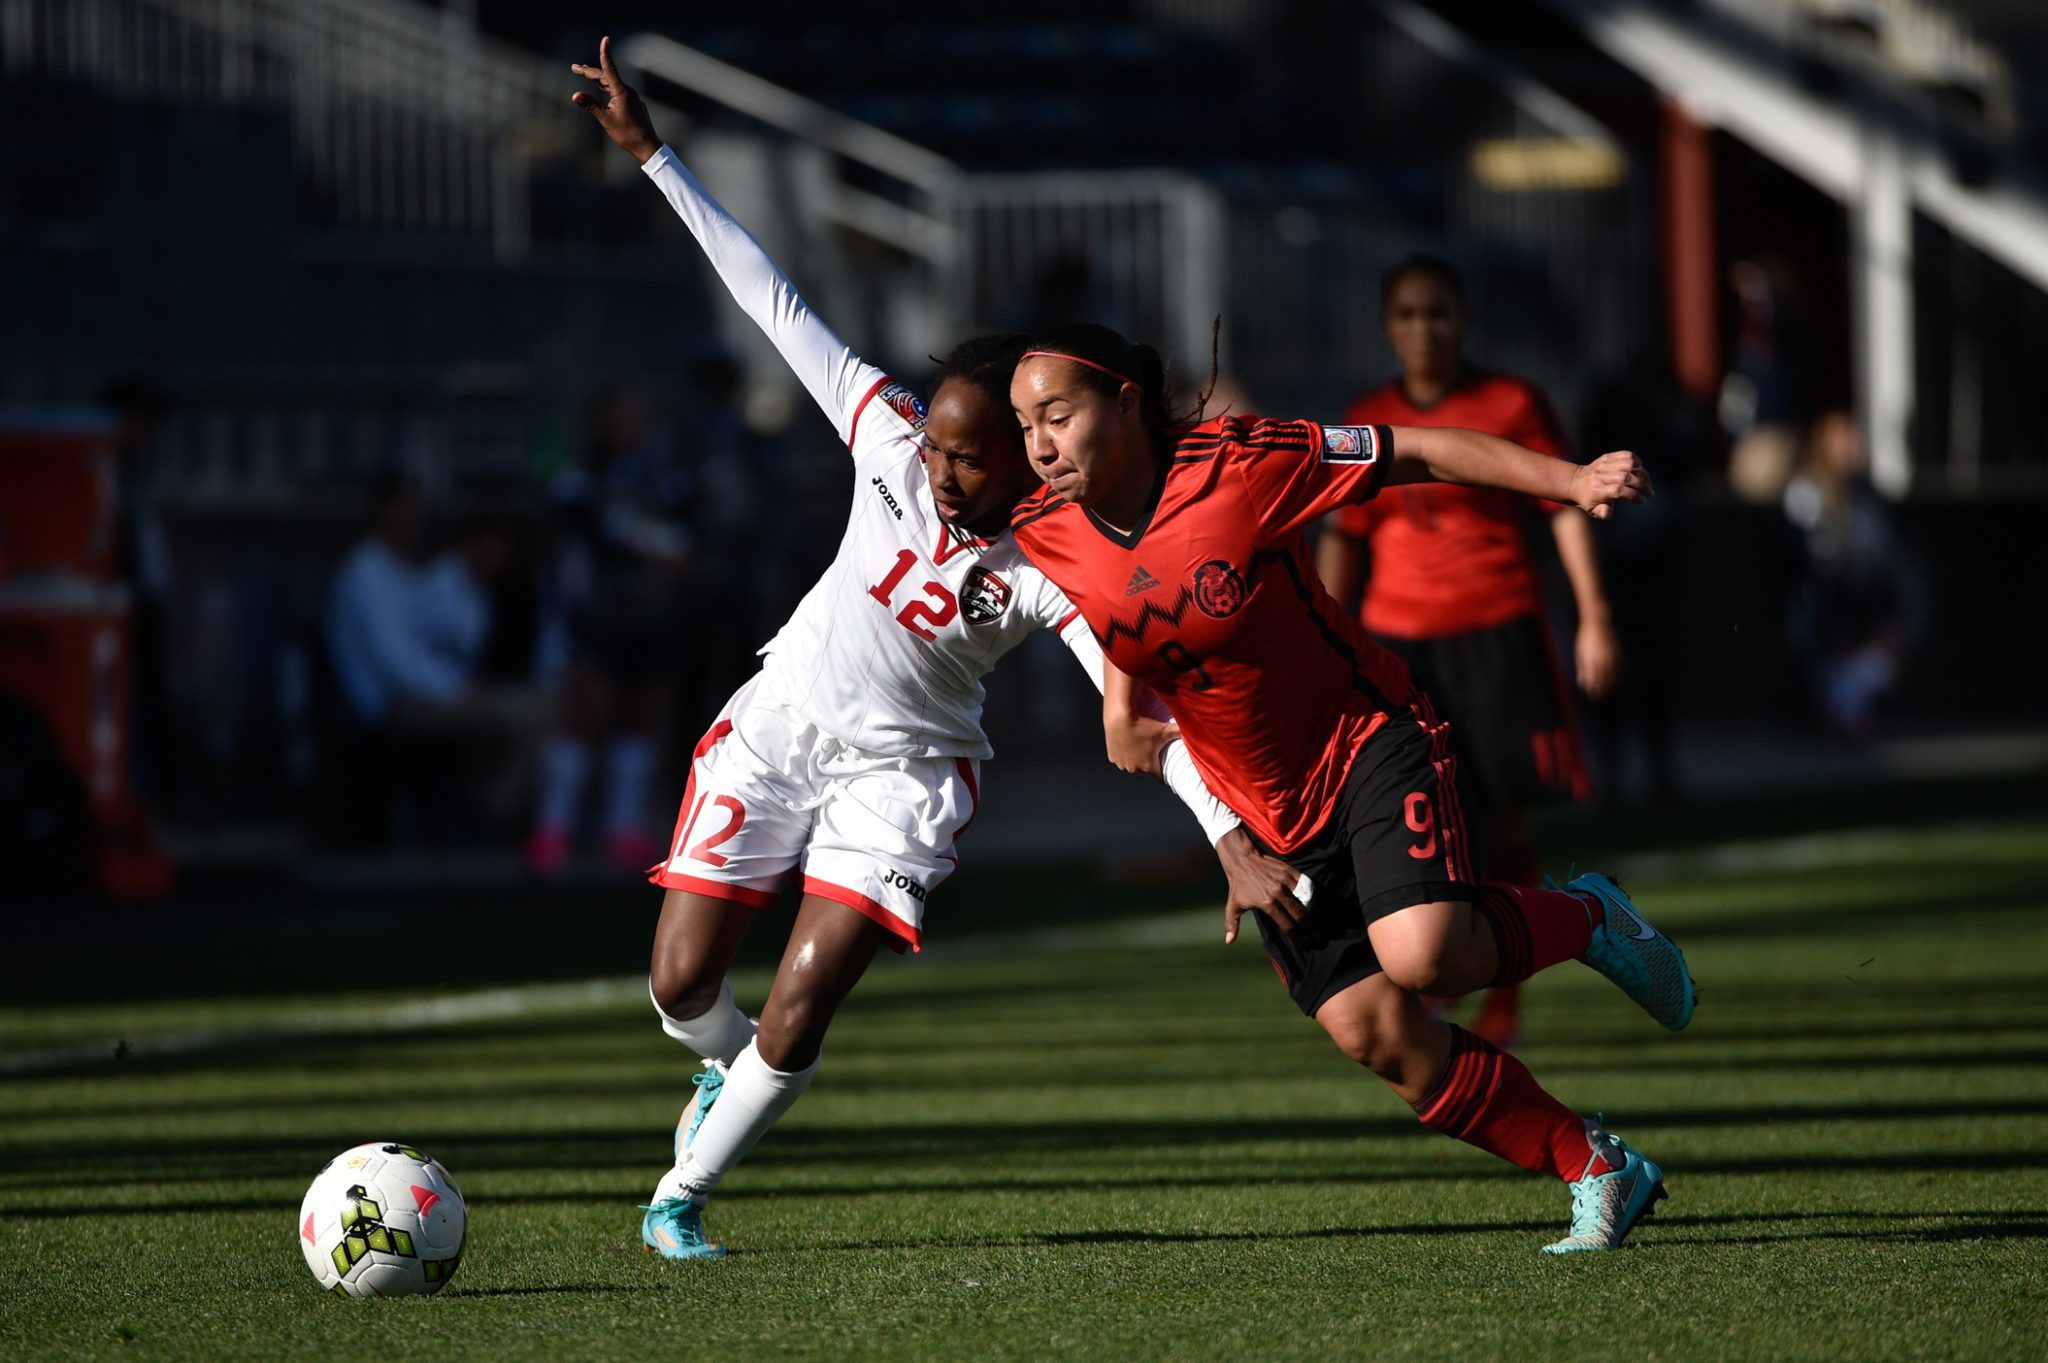 Charlyn Corral scored twice to lift Mexico to the World Cup. (USA Today Images)